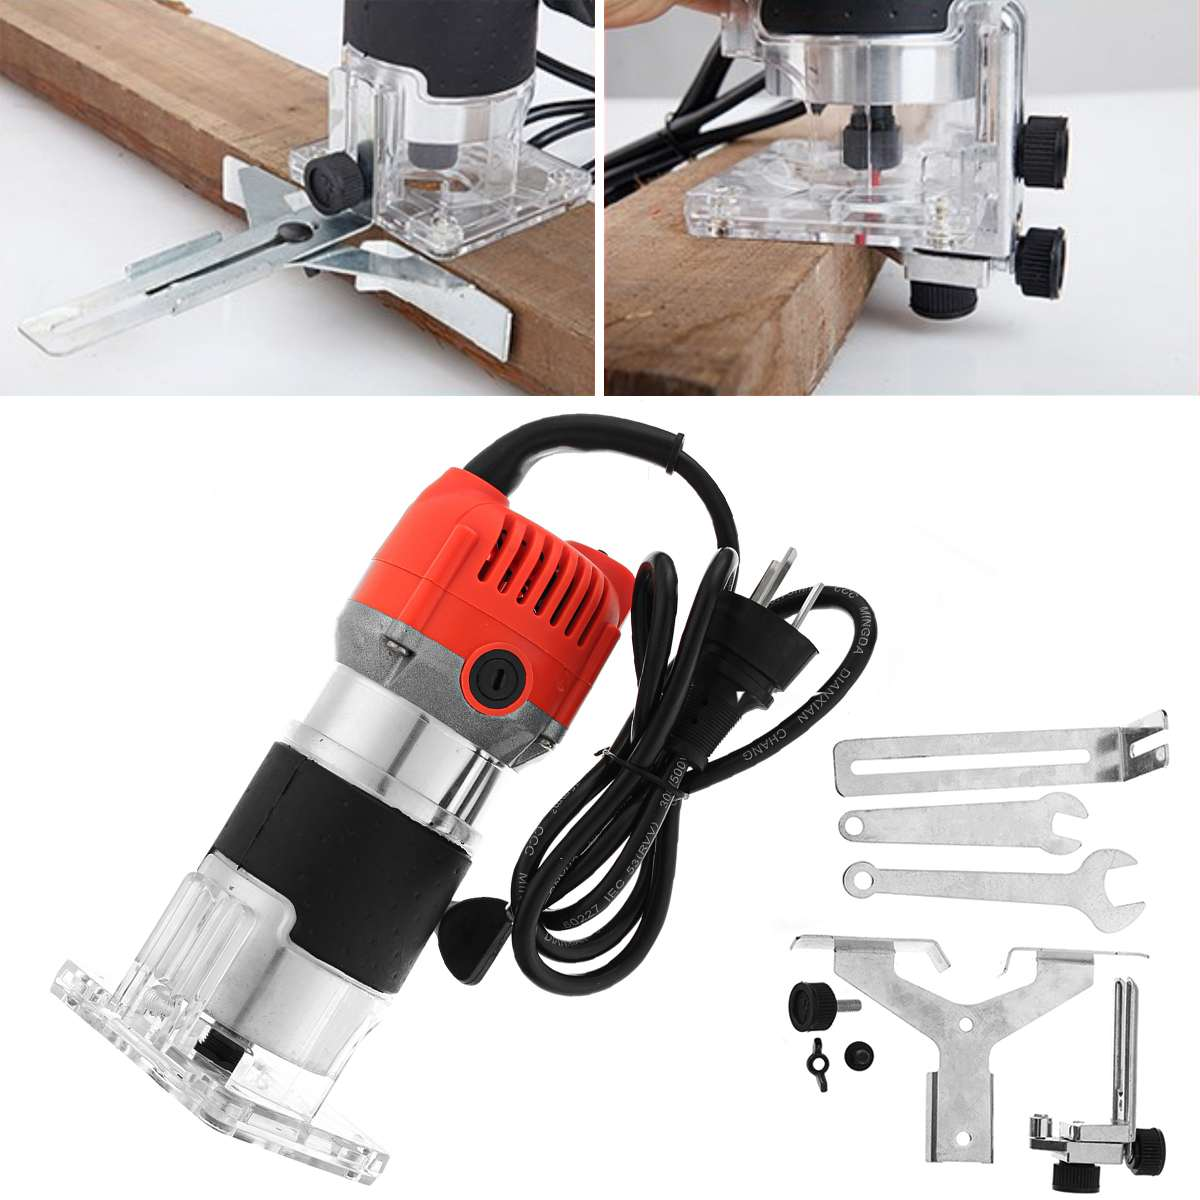 Dutiful Electric Trimmer Wood 220v 30000rpm Hand Carving Machine Wood Router Trimming 800w Leather Woodworking Diy Power Tools Factory Direct Selling Price